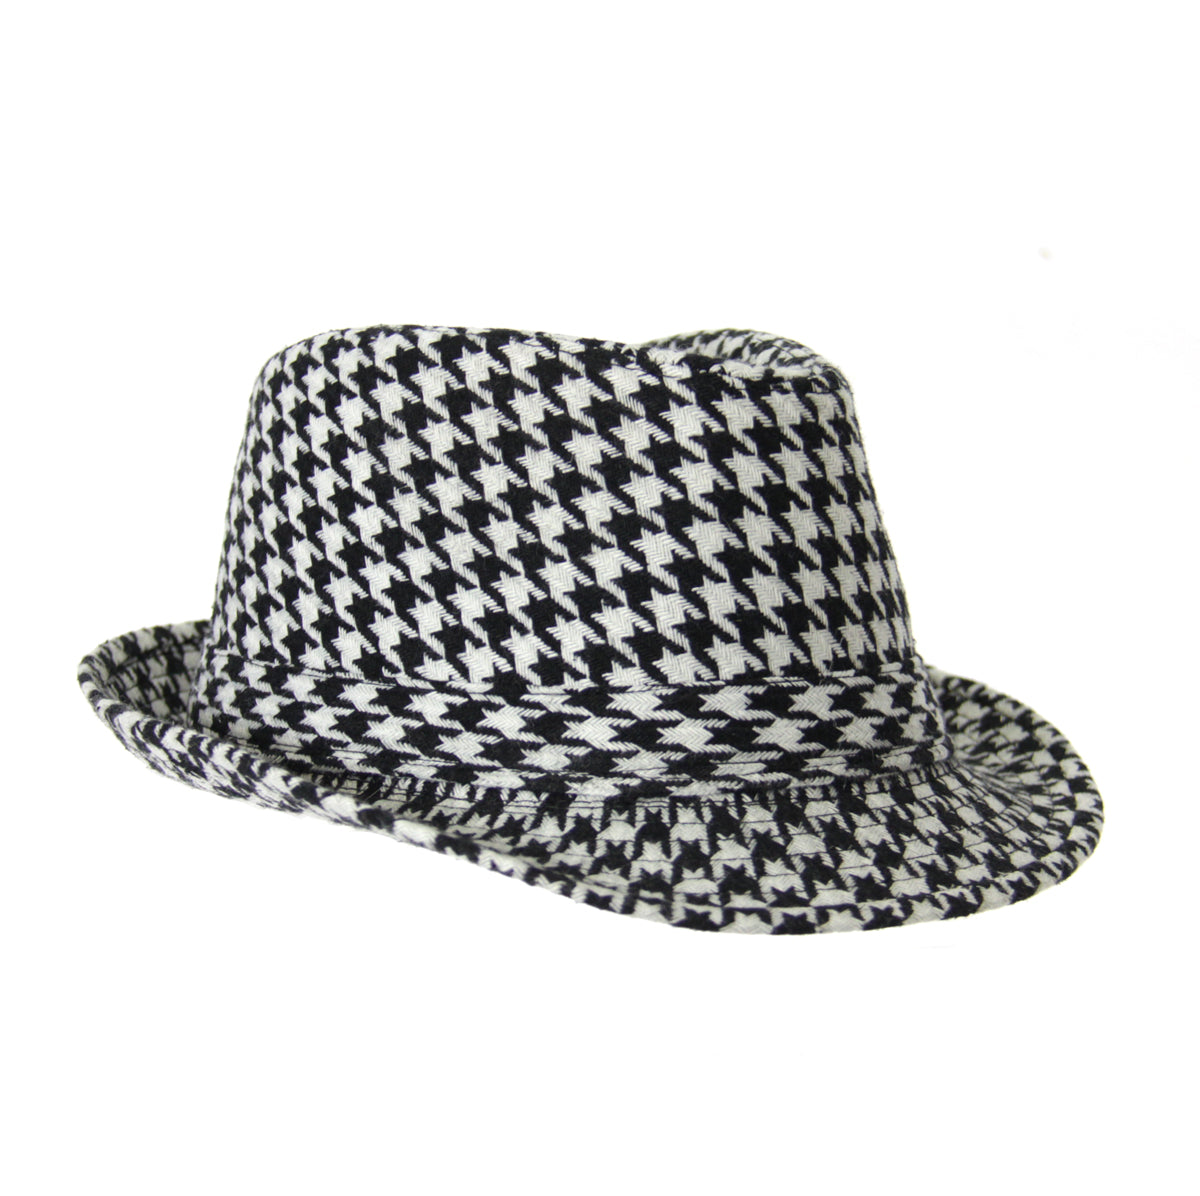 091553fbf Houndstooth Hat | JustHere.tk - Hot Popular Items